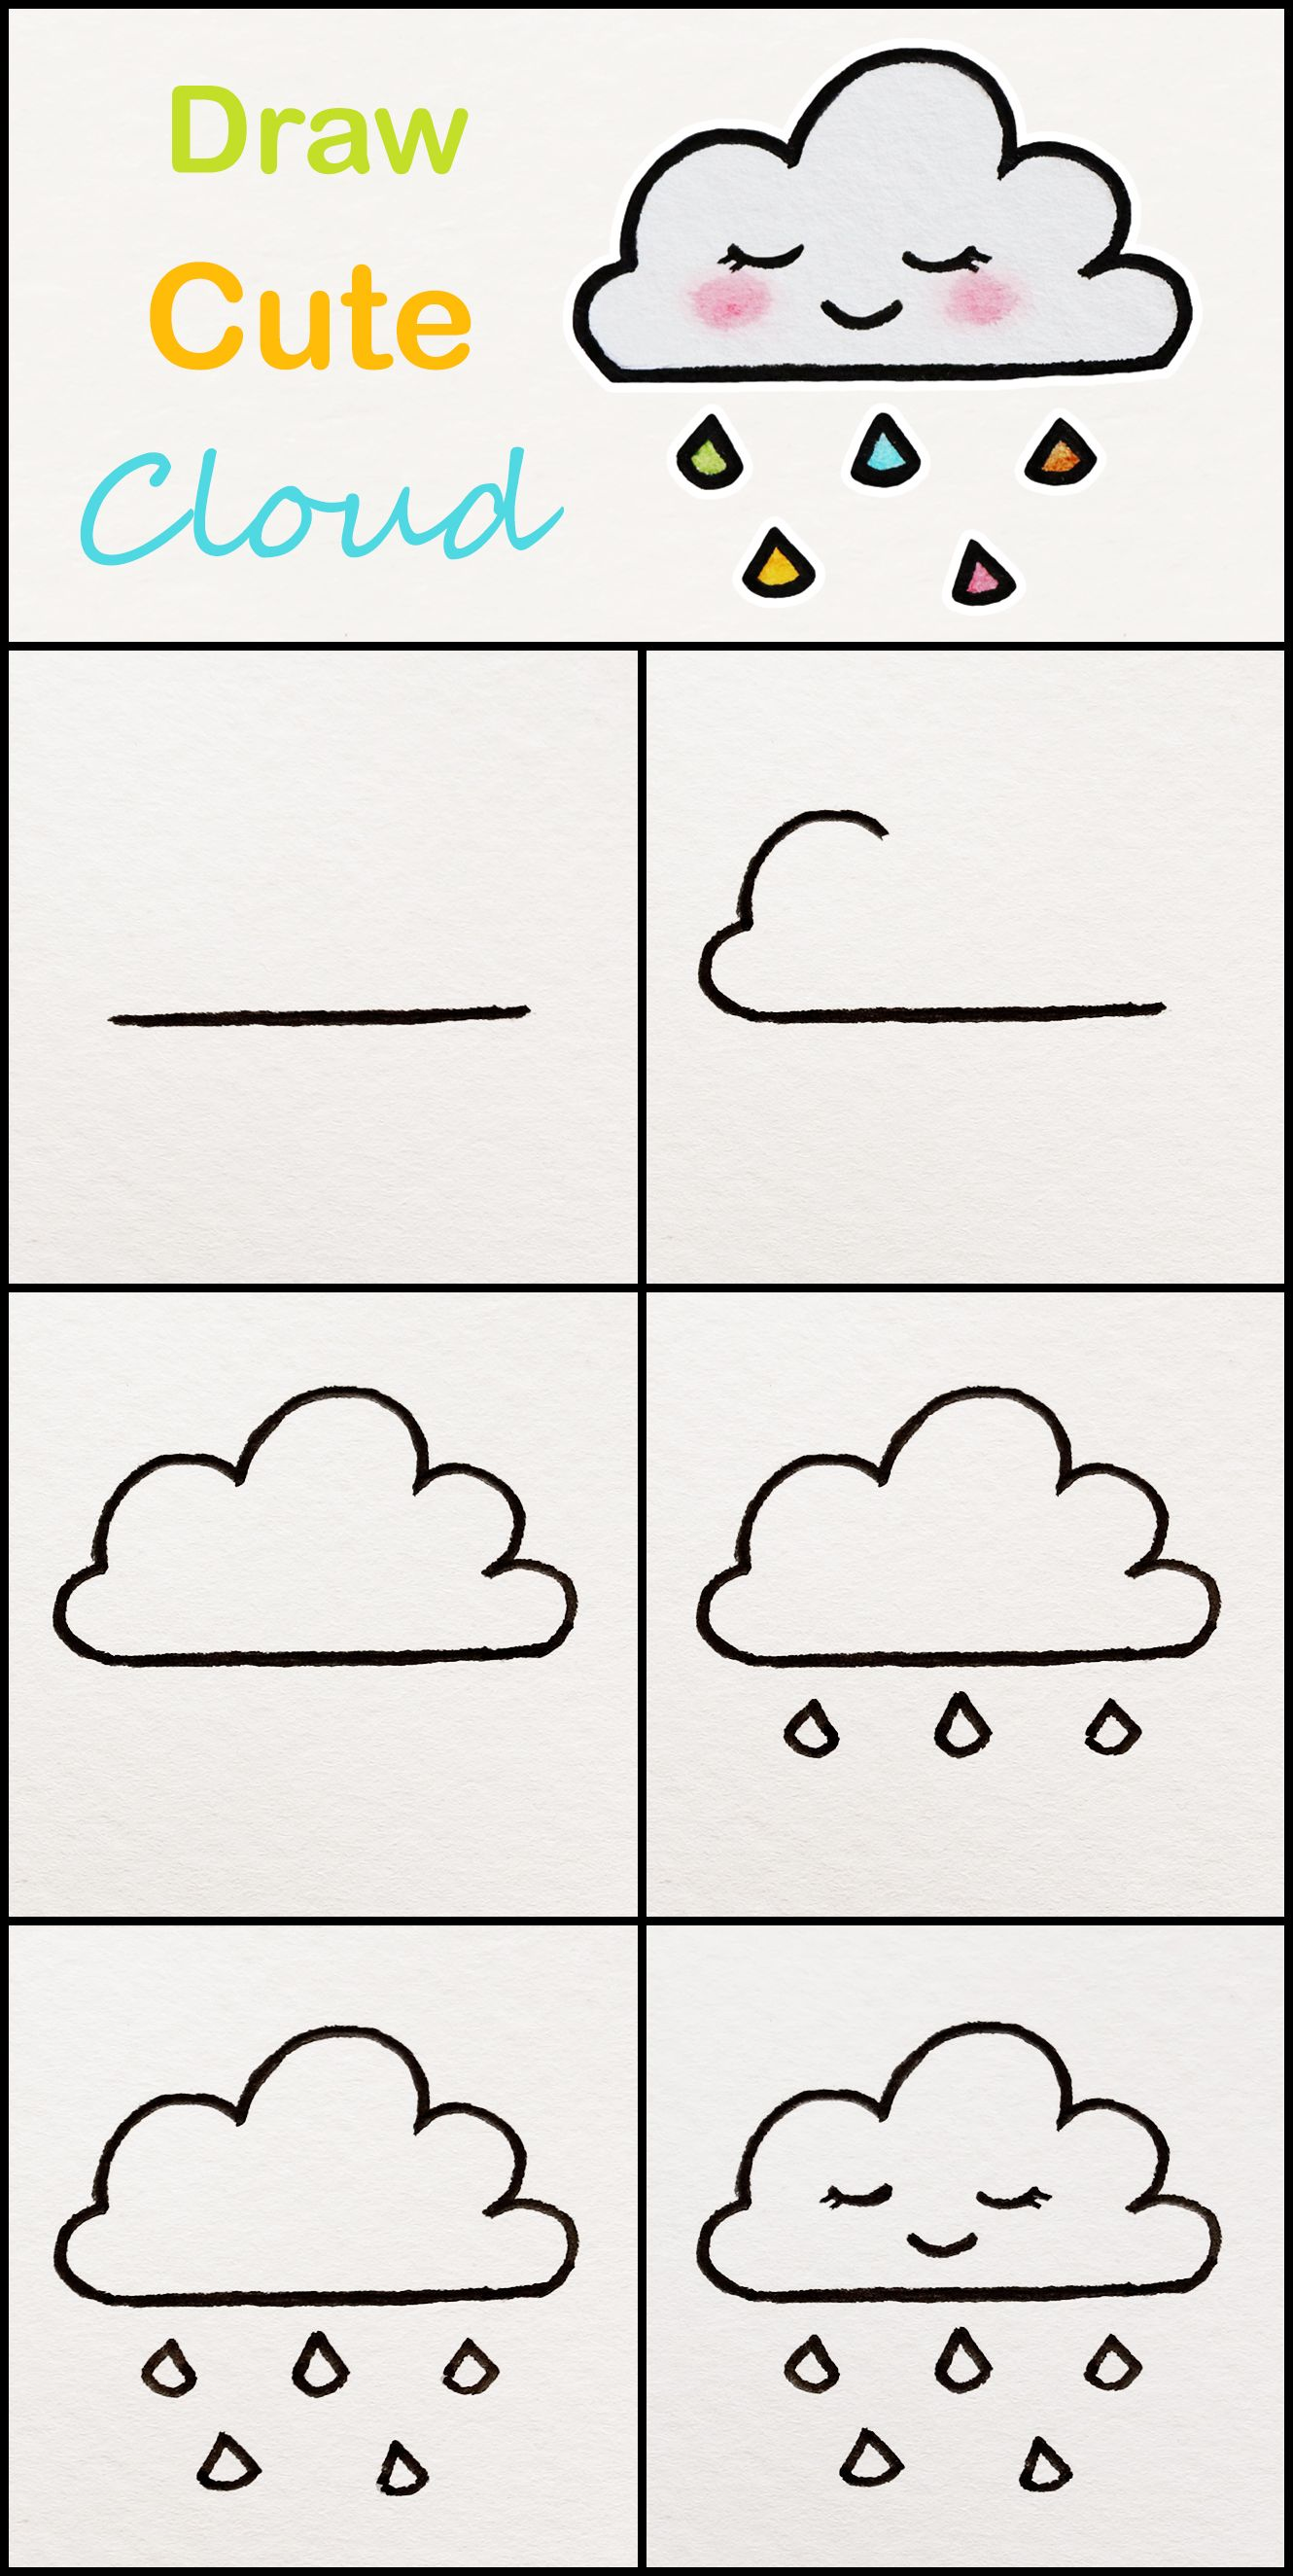 Learn How To Draw A Cute Cloud Step By Step Very Simple Tutorial Cloud Drawings Kawaii T Easy Drawings For Kids Easy Drawings For Beginners Easy Drawings